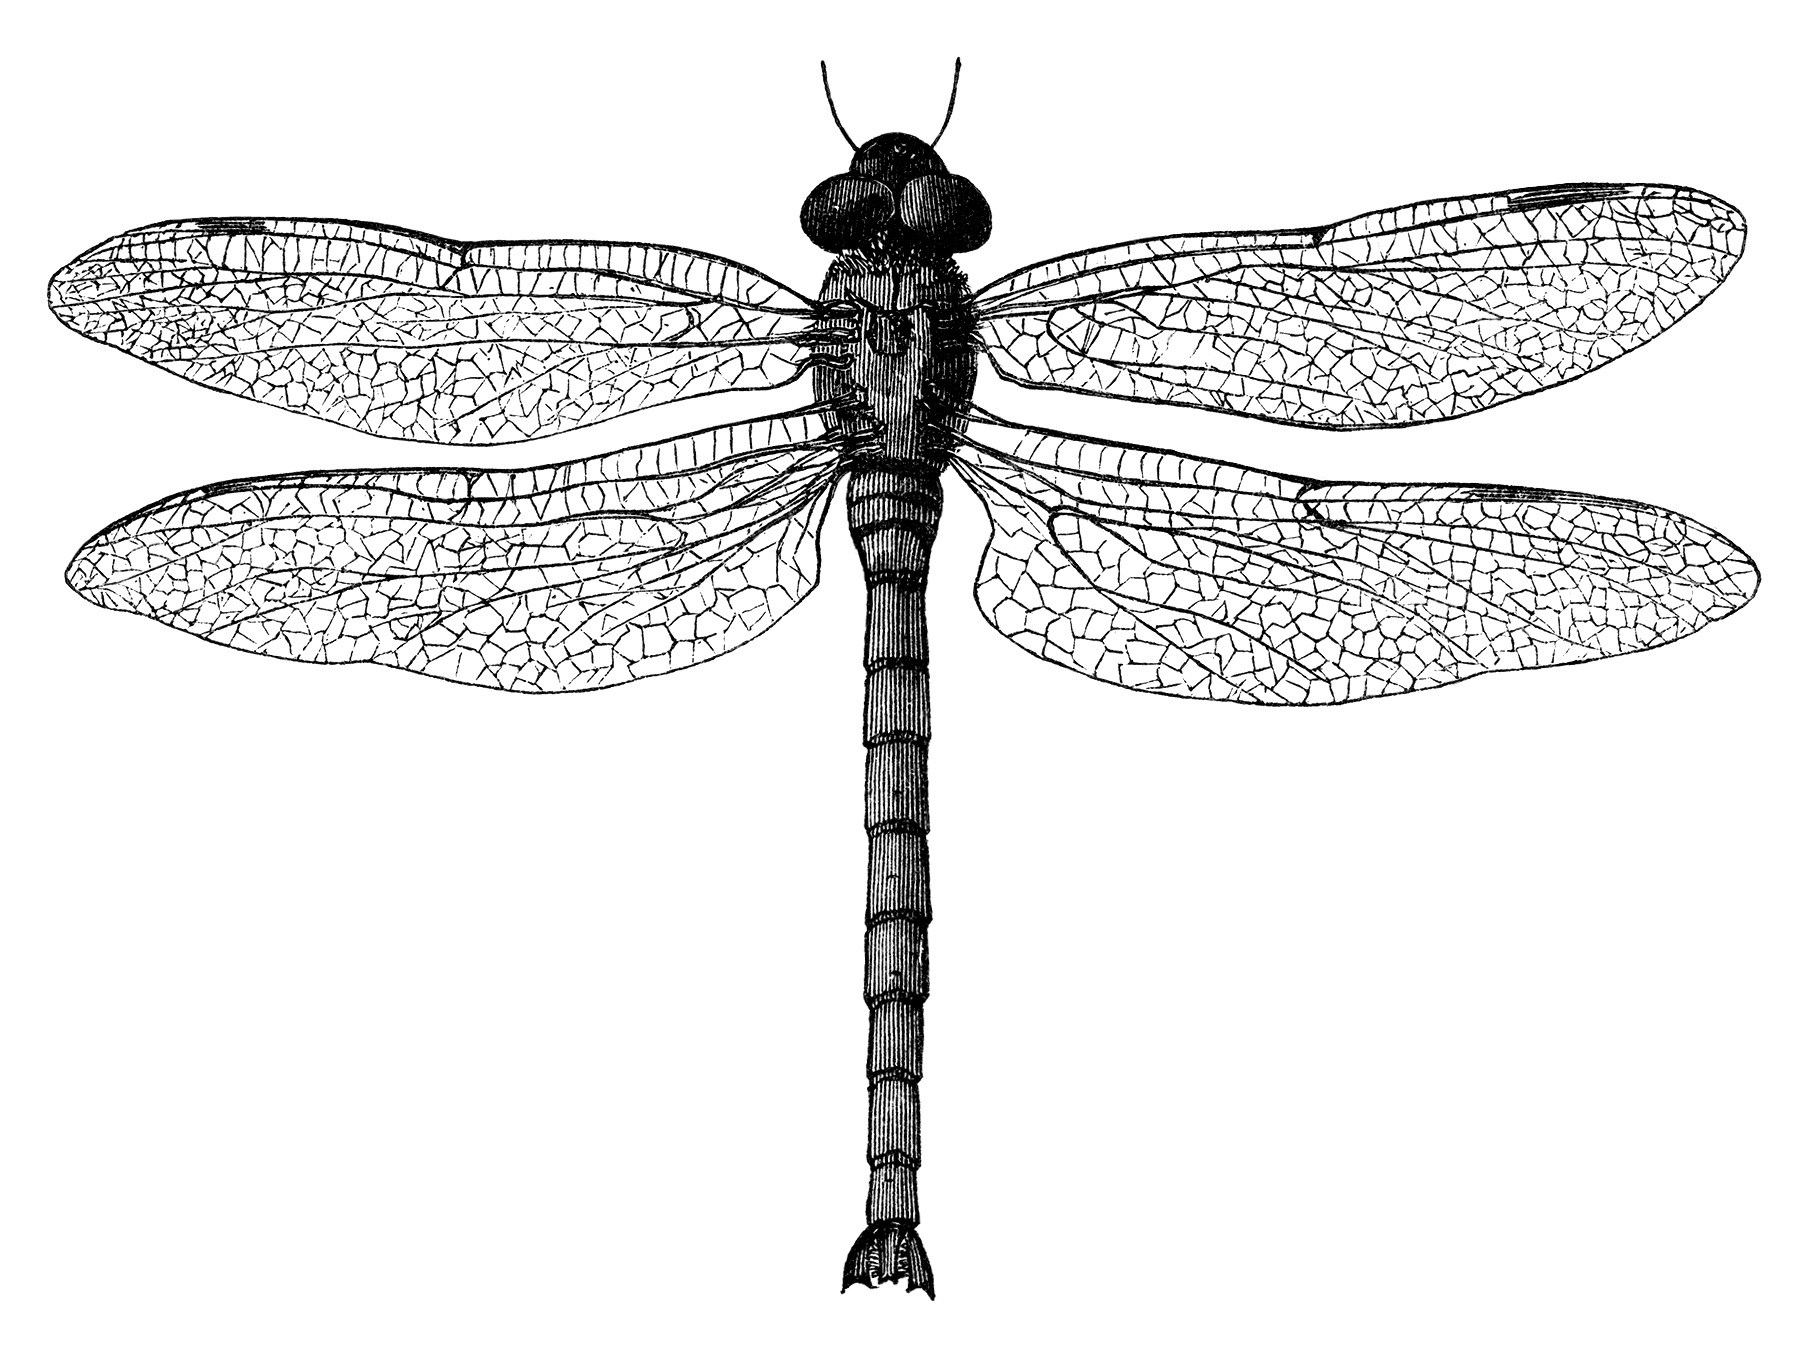 Dragonfly Clipart Digital Stamp Dragonfly Old Dragonfly Illustration